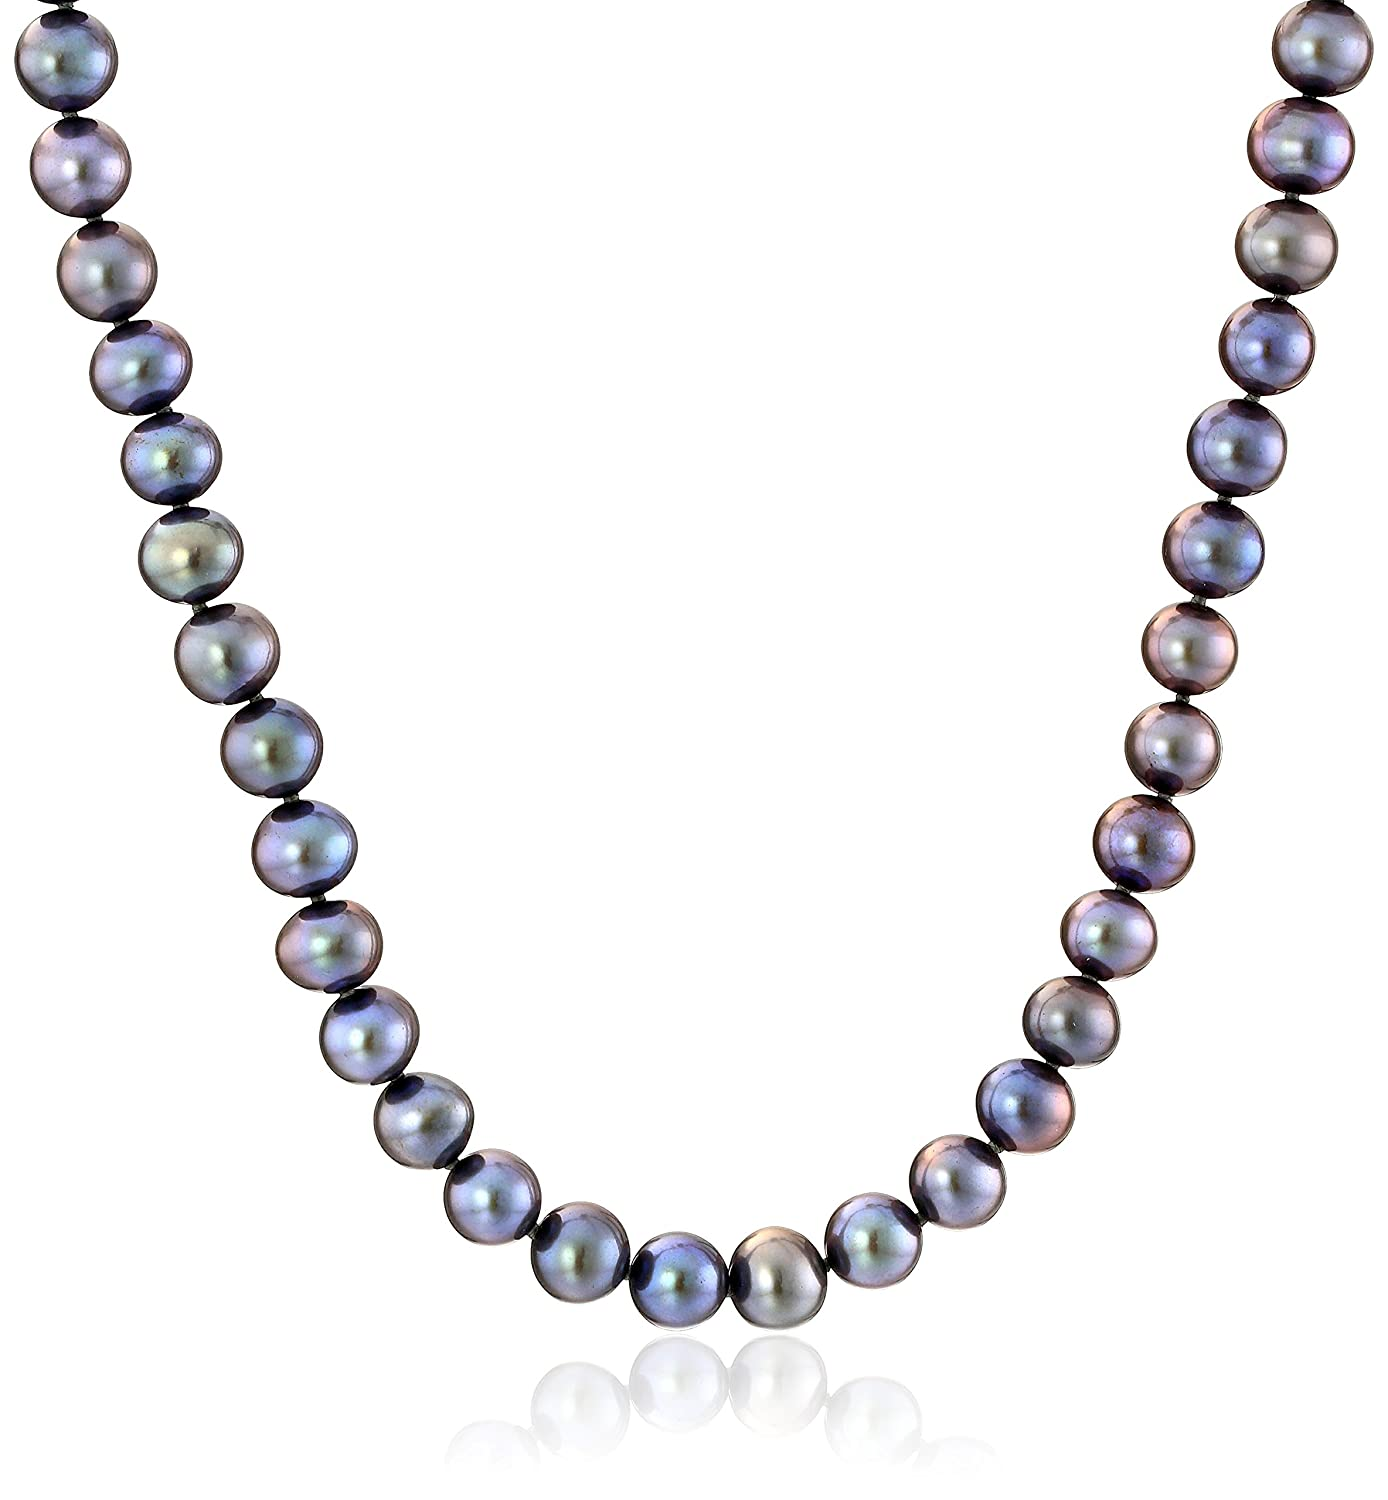 14K Yellow Gold 8mm-9mm Black Freshwater Cultured AA Quality Pearl Strand Necklace 18 Amazon Collection LN6204BLYG18